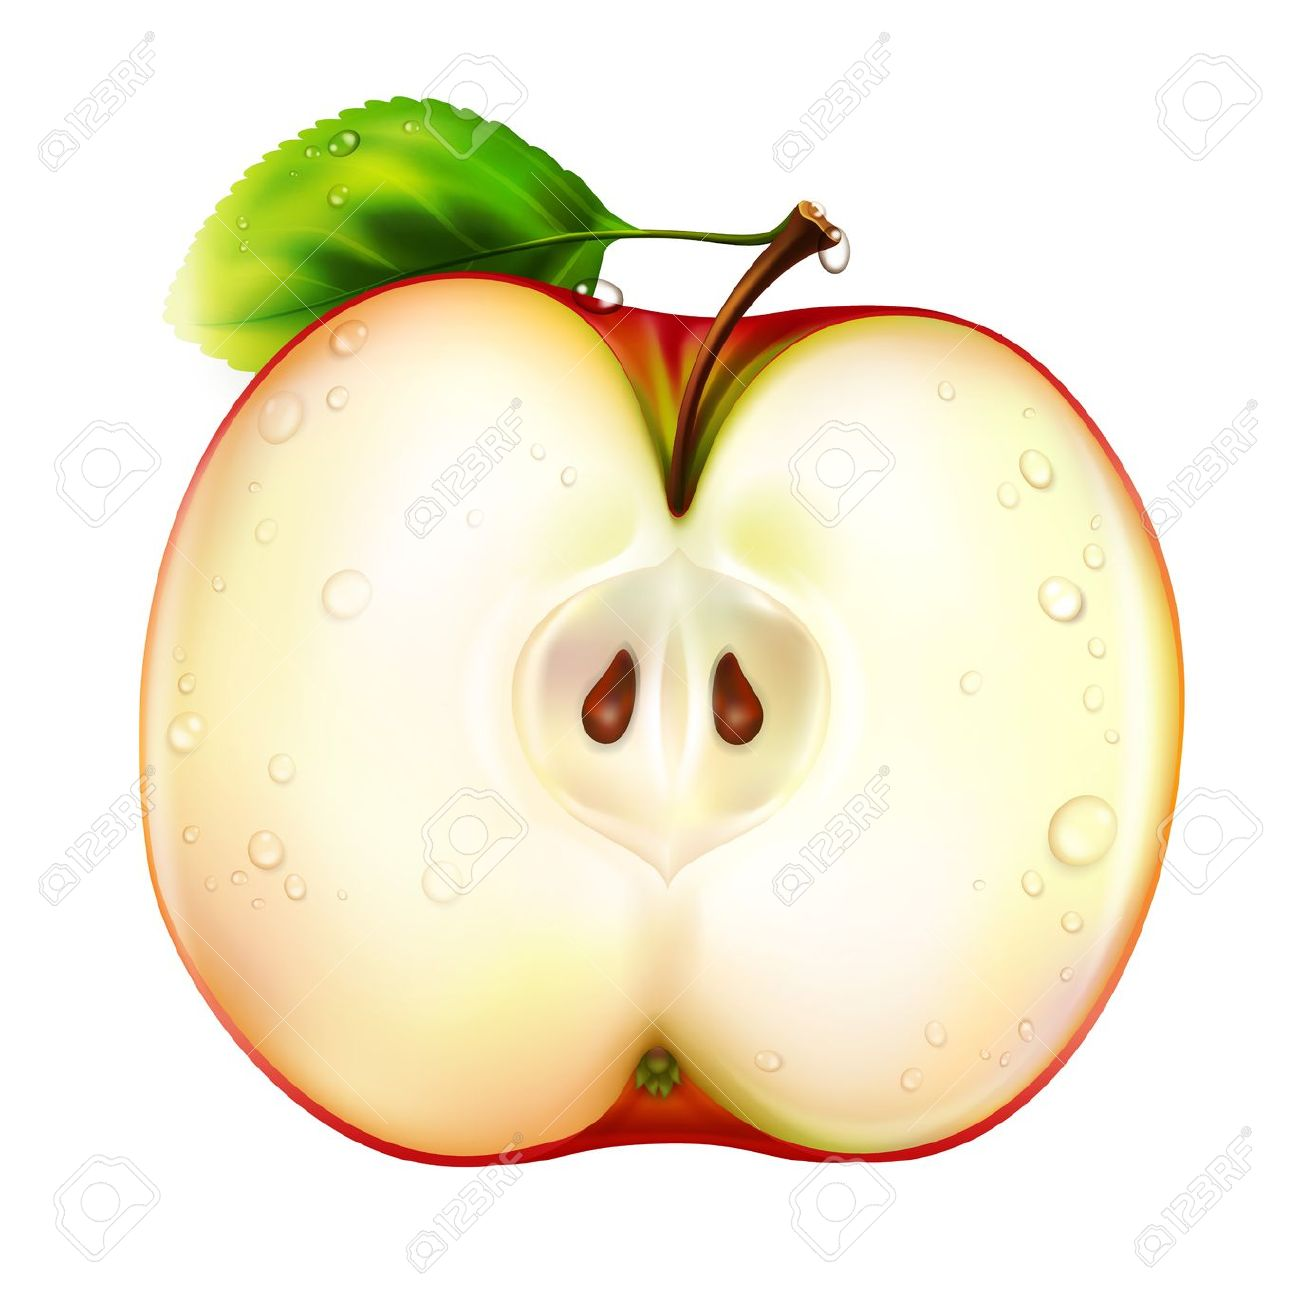 Apple cut in half clipart no background.